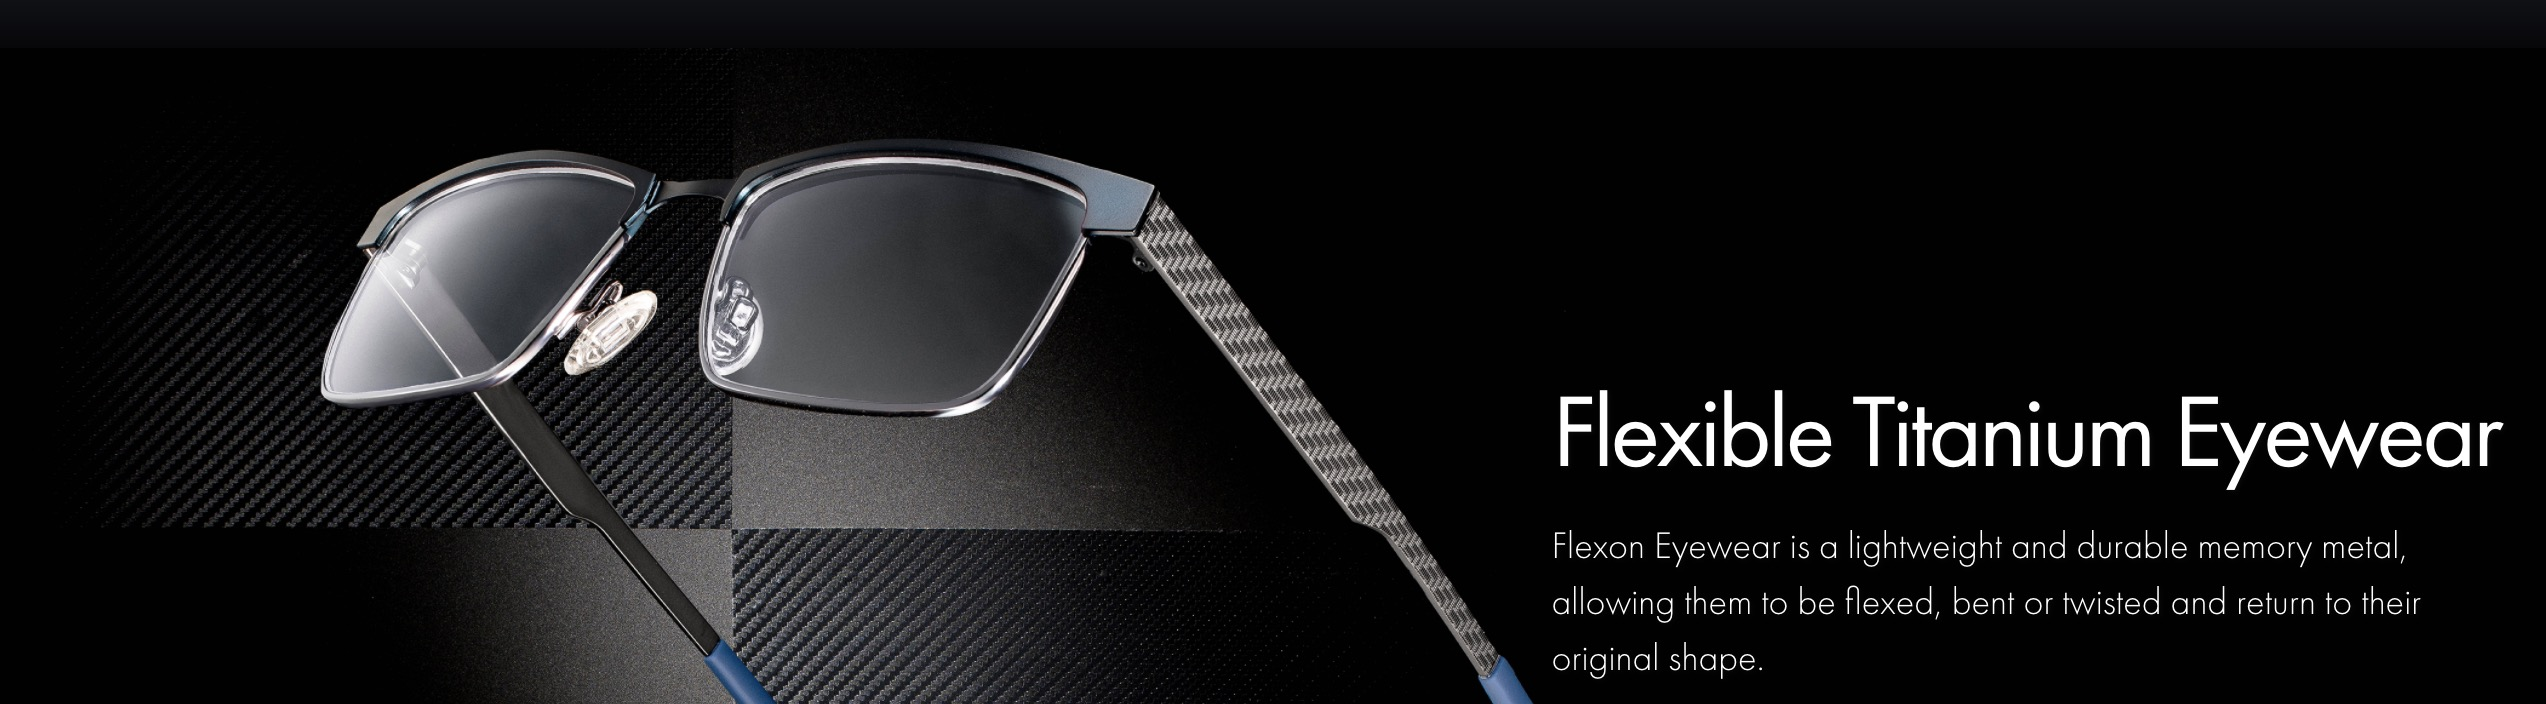 Flexible Glasses by Flexon